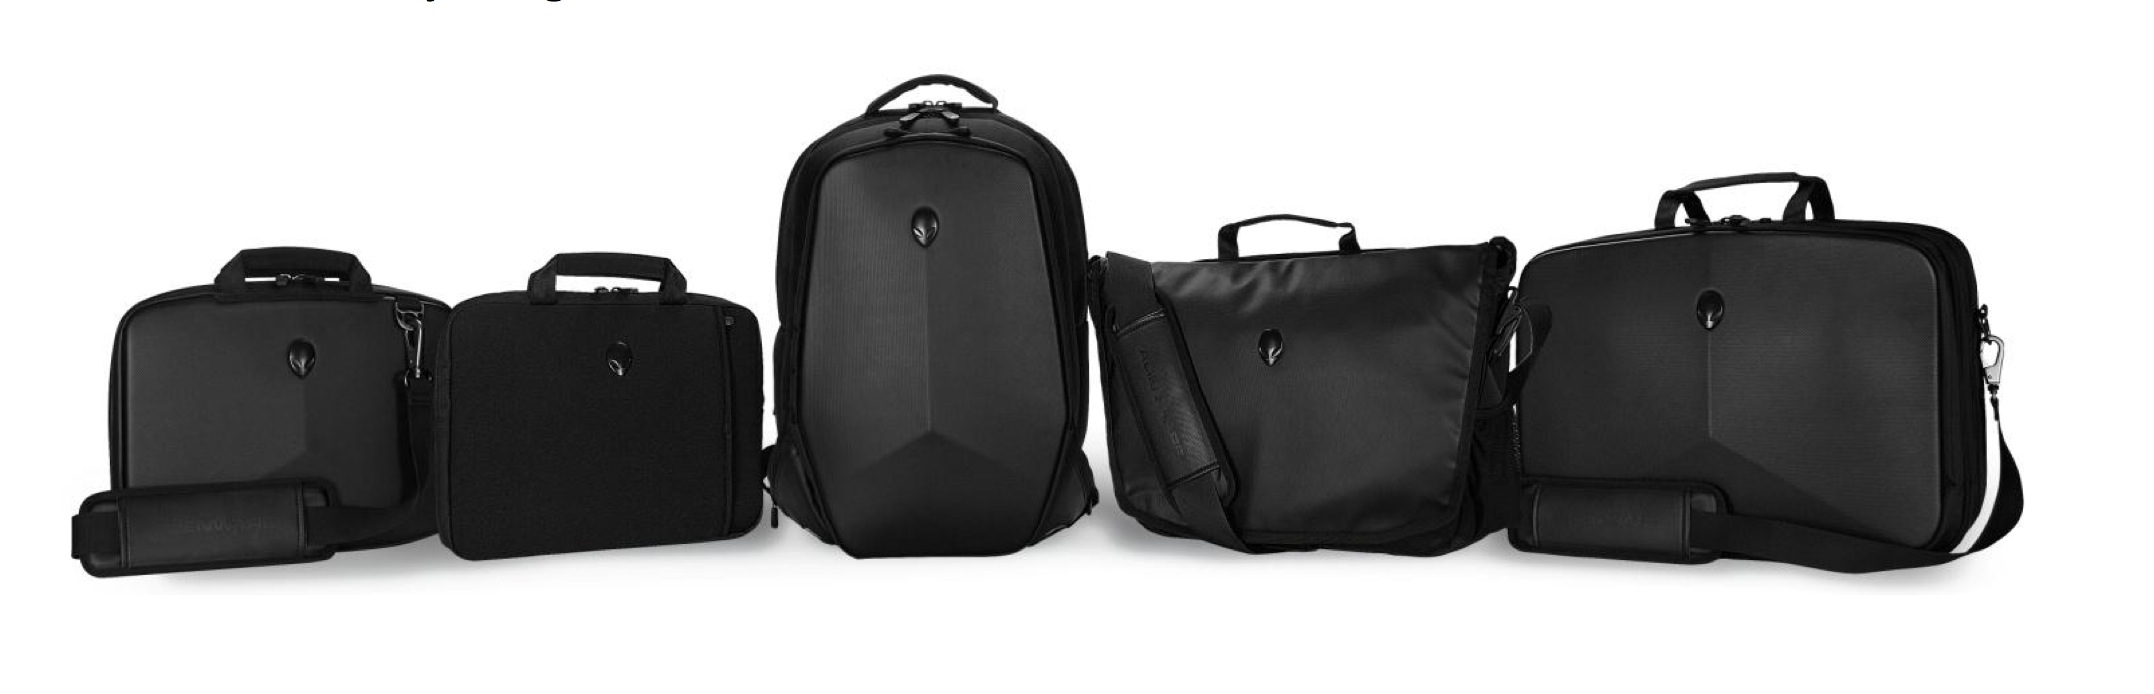 Alienware-Vindicator-Bags